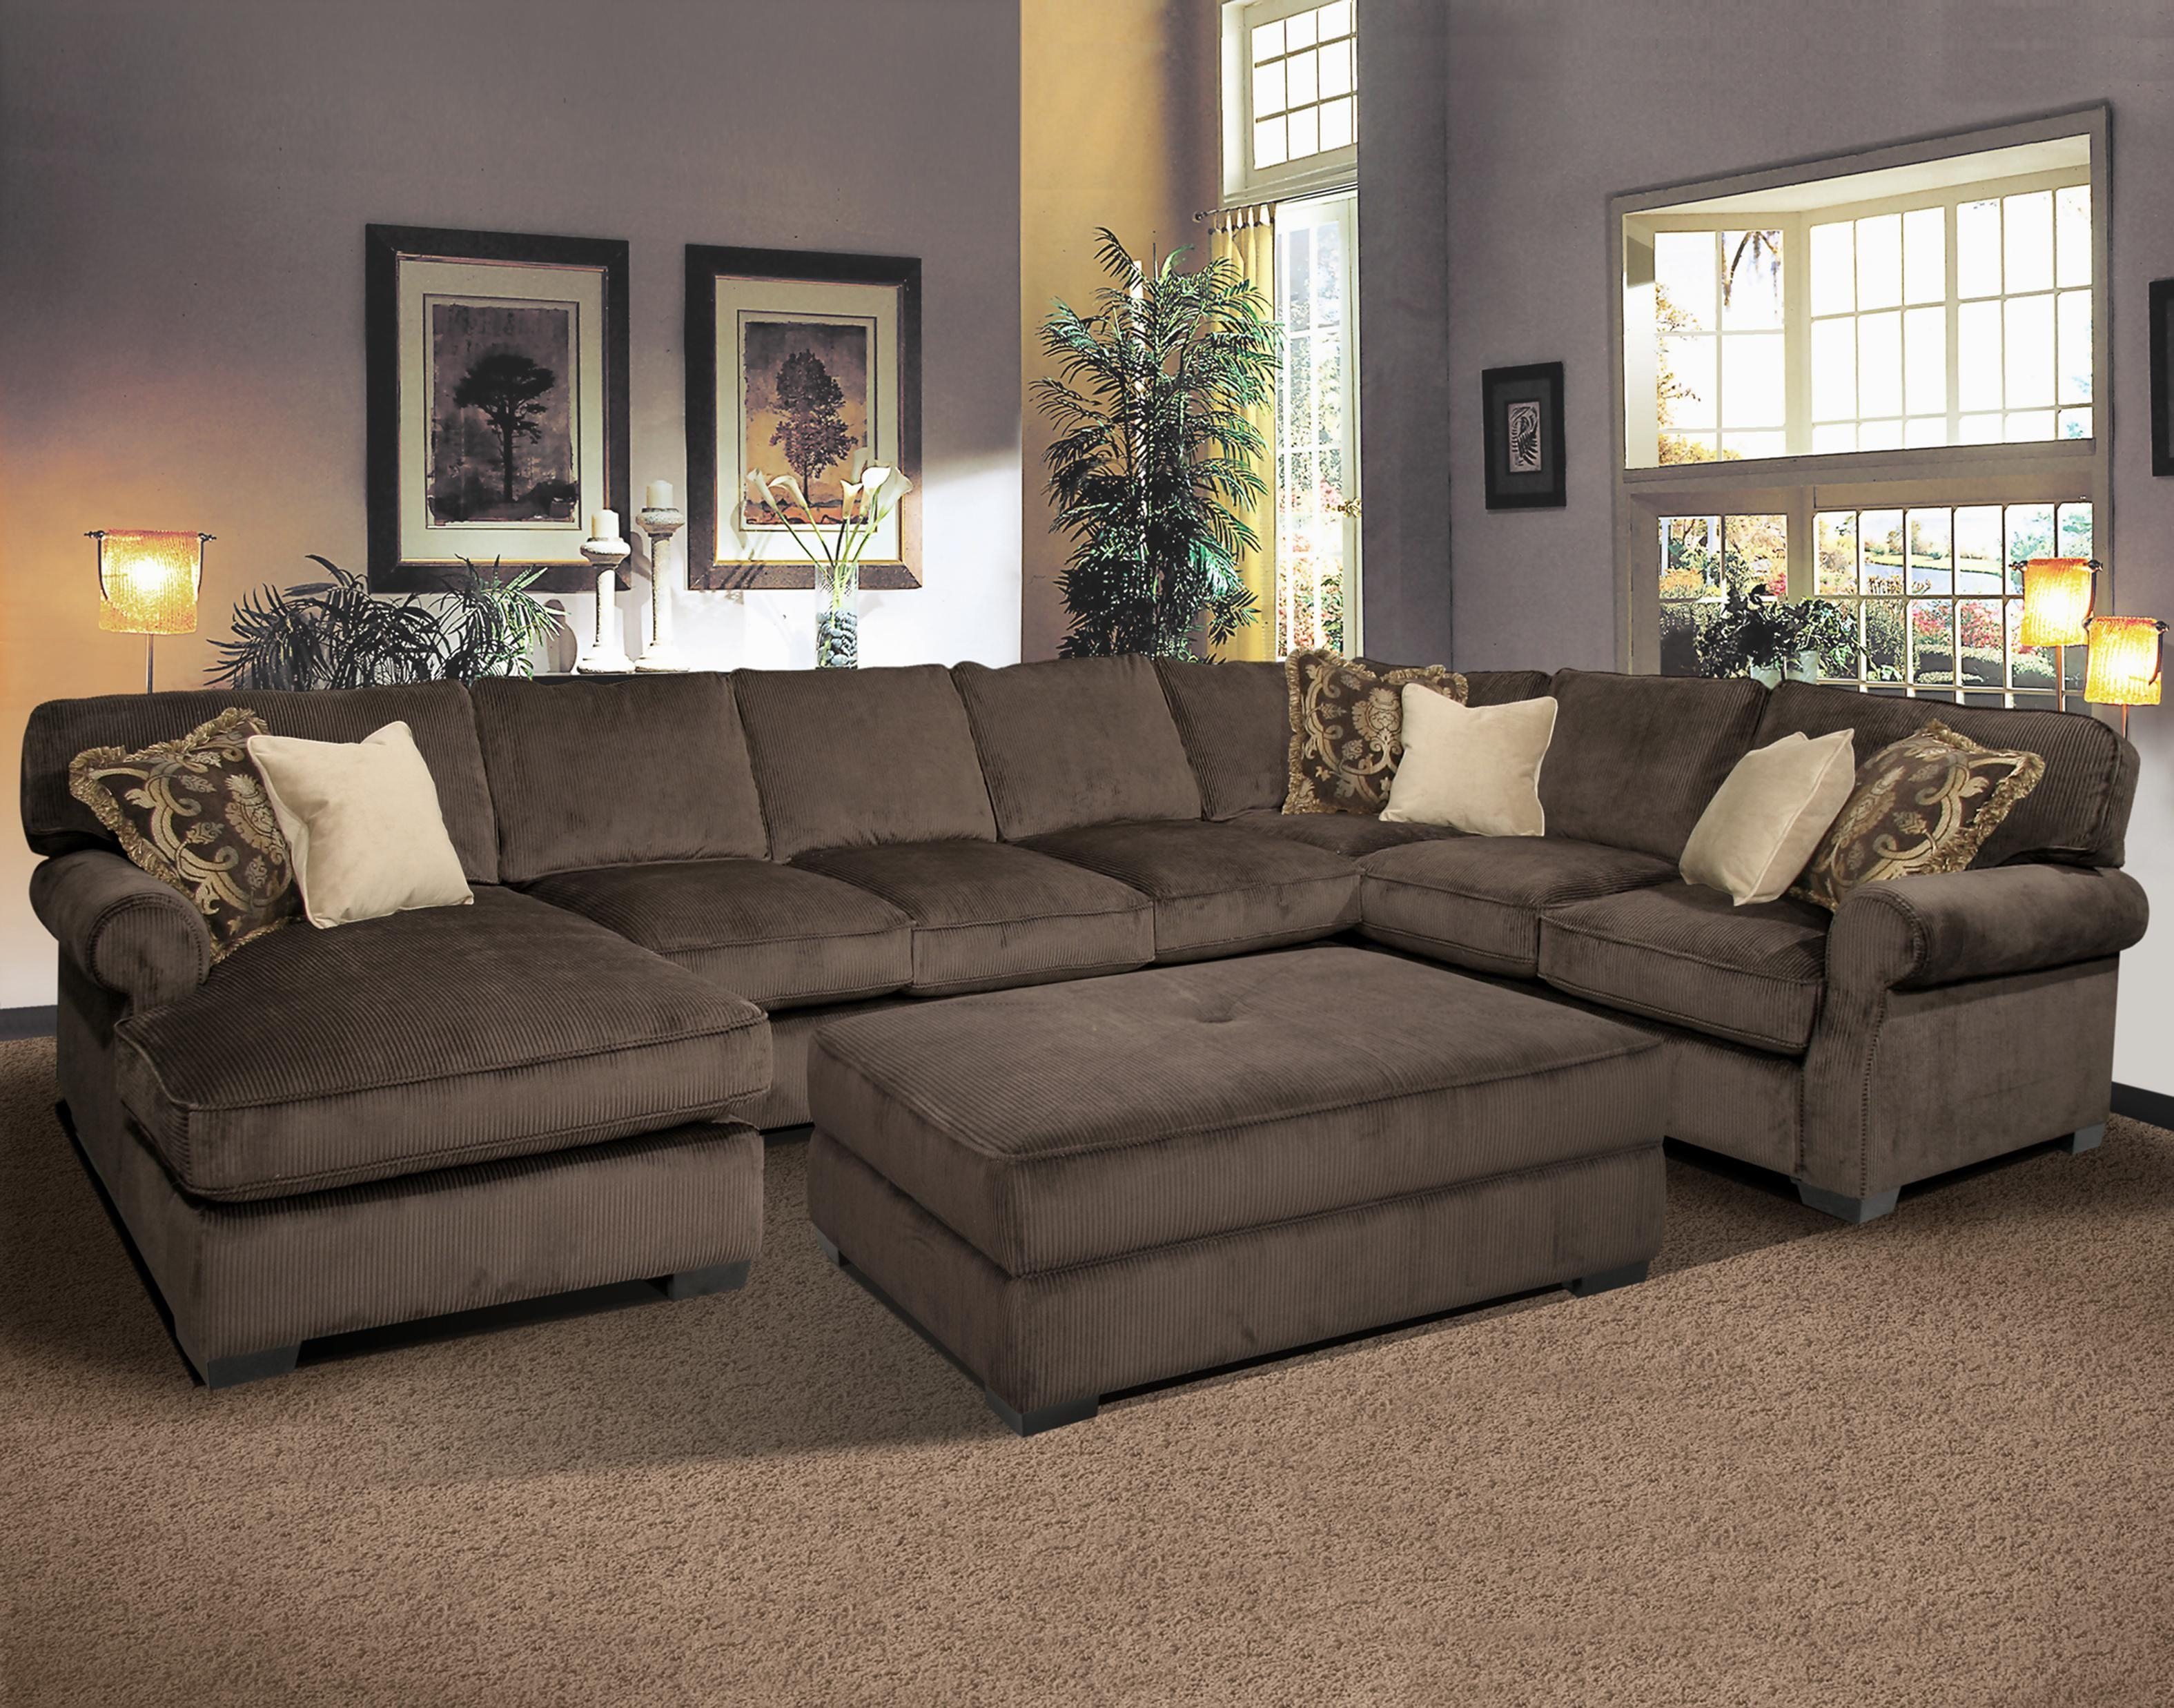 Sofas Center : Cozyown Filled Sectional Sofa For Find Small Sofas Regarding Goose Down Sectional Sofa (Image 10 of 15)